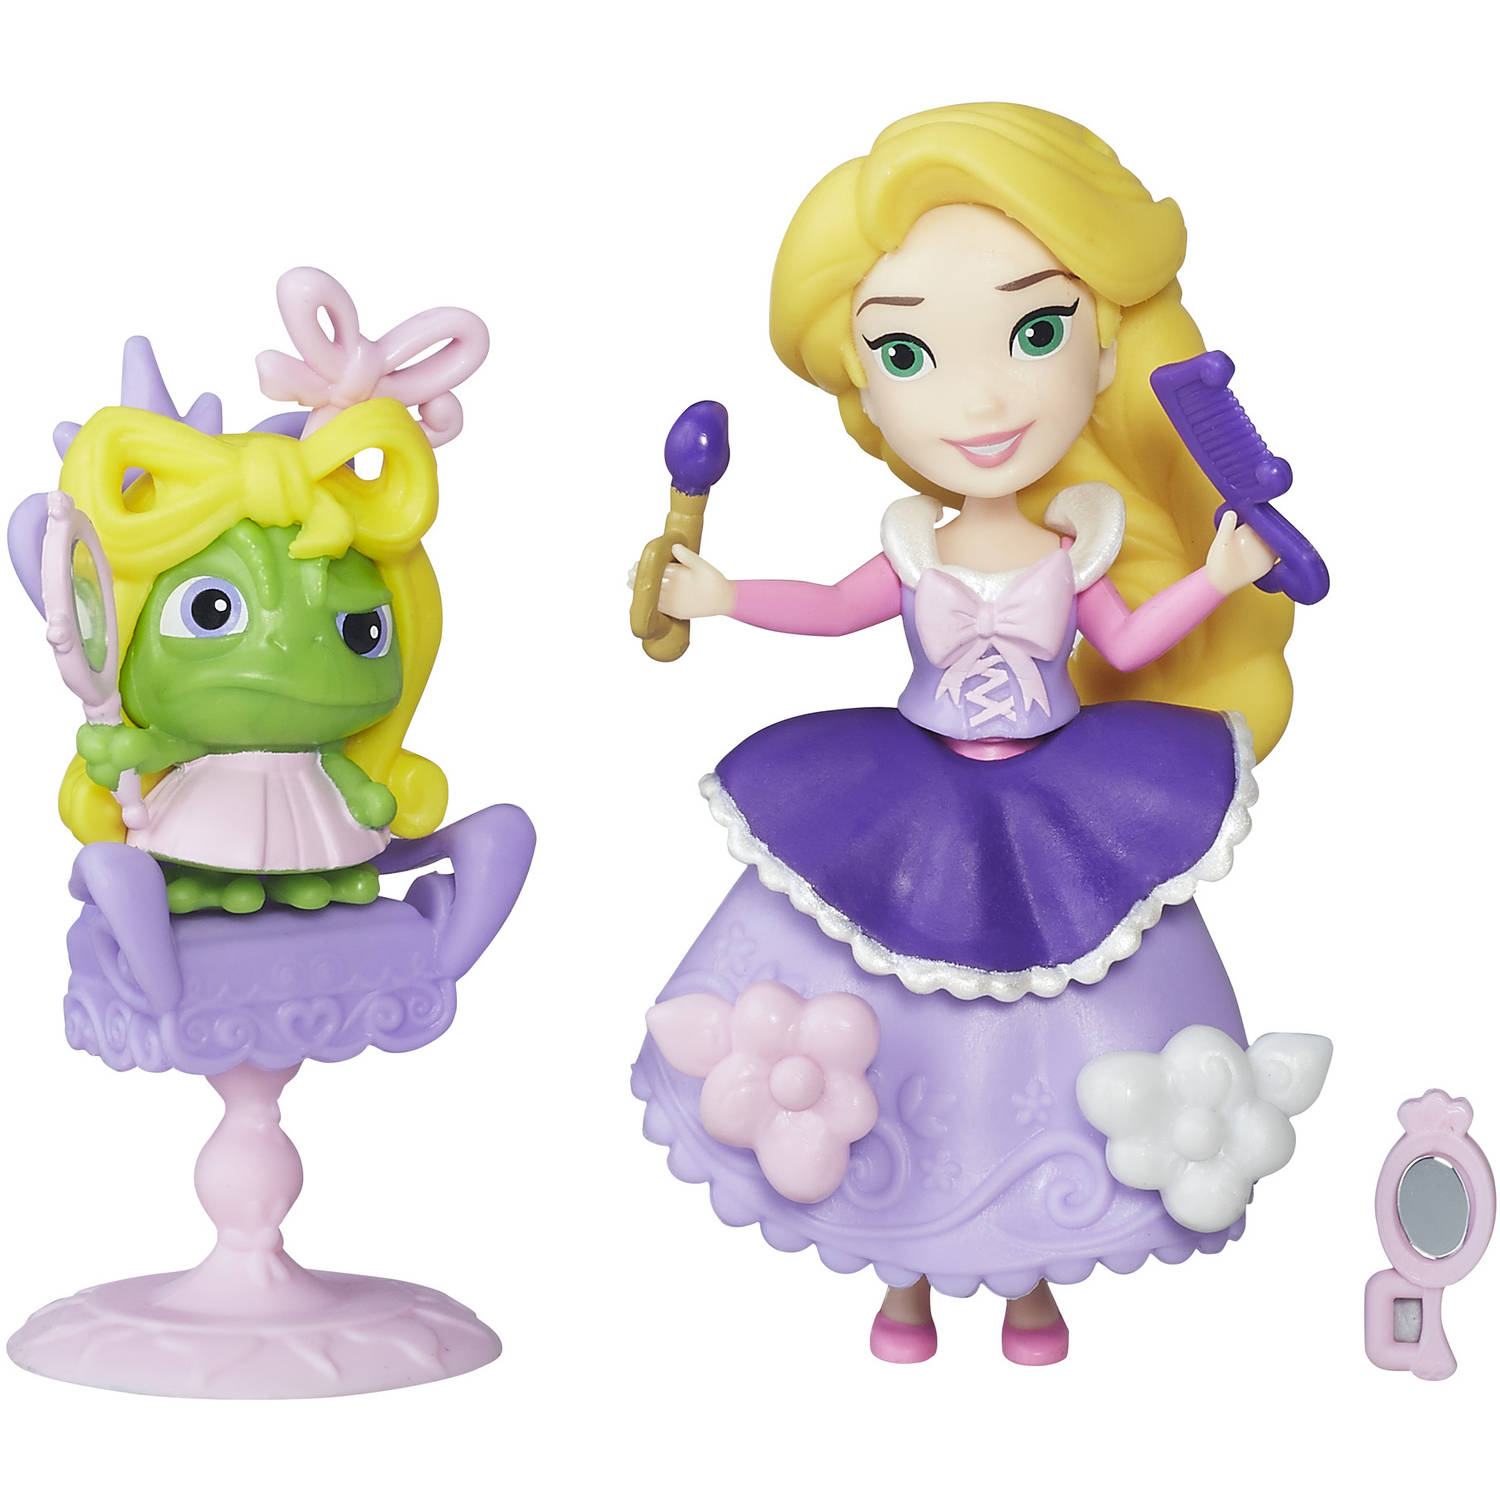 Disney Princess Rapunzel's Styling Salon by Hasbro